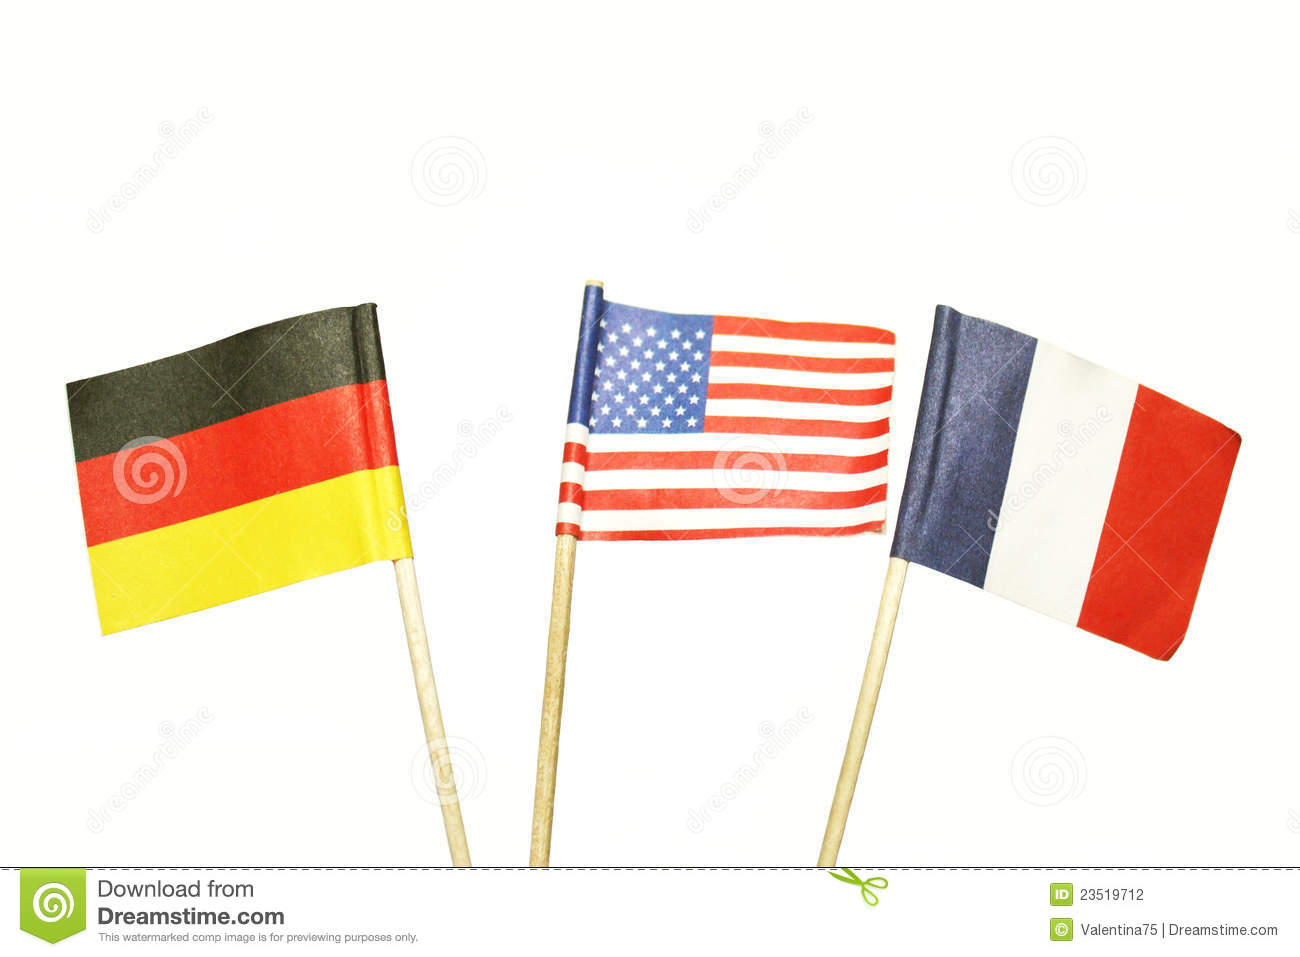 French, German, French or Russian?